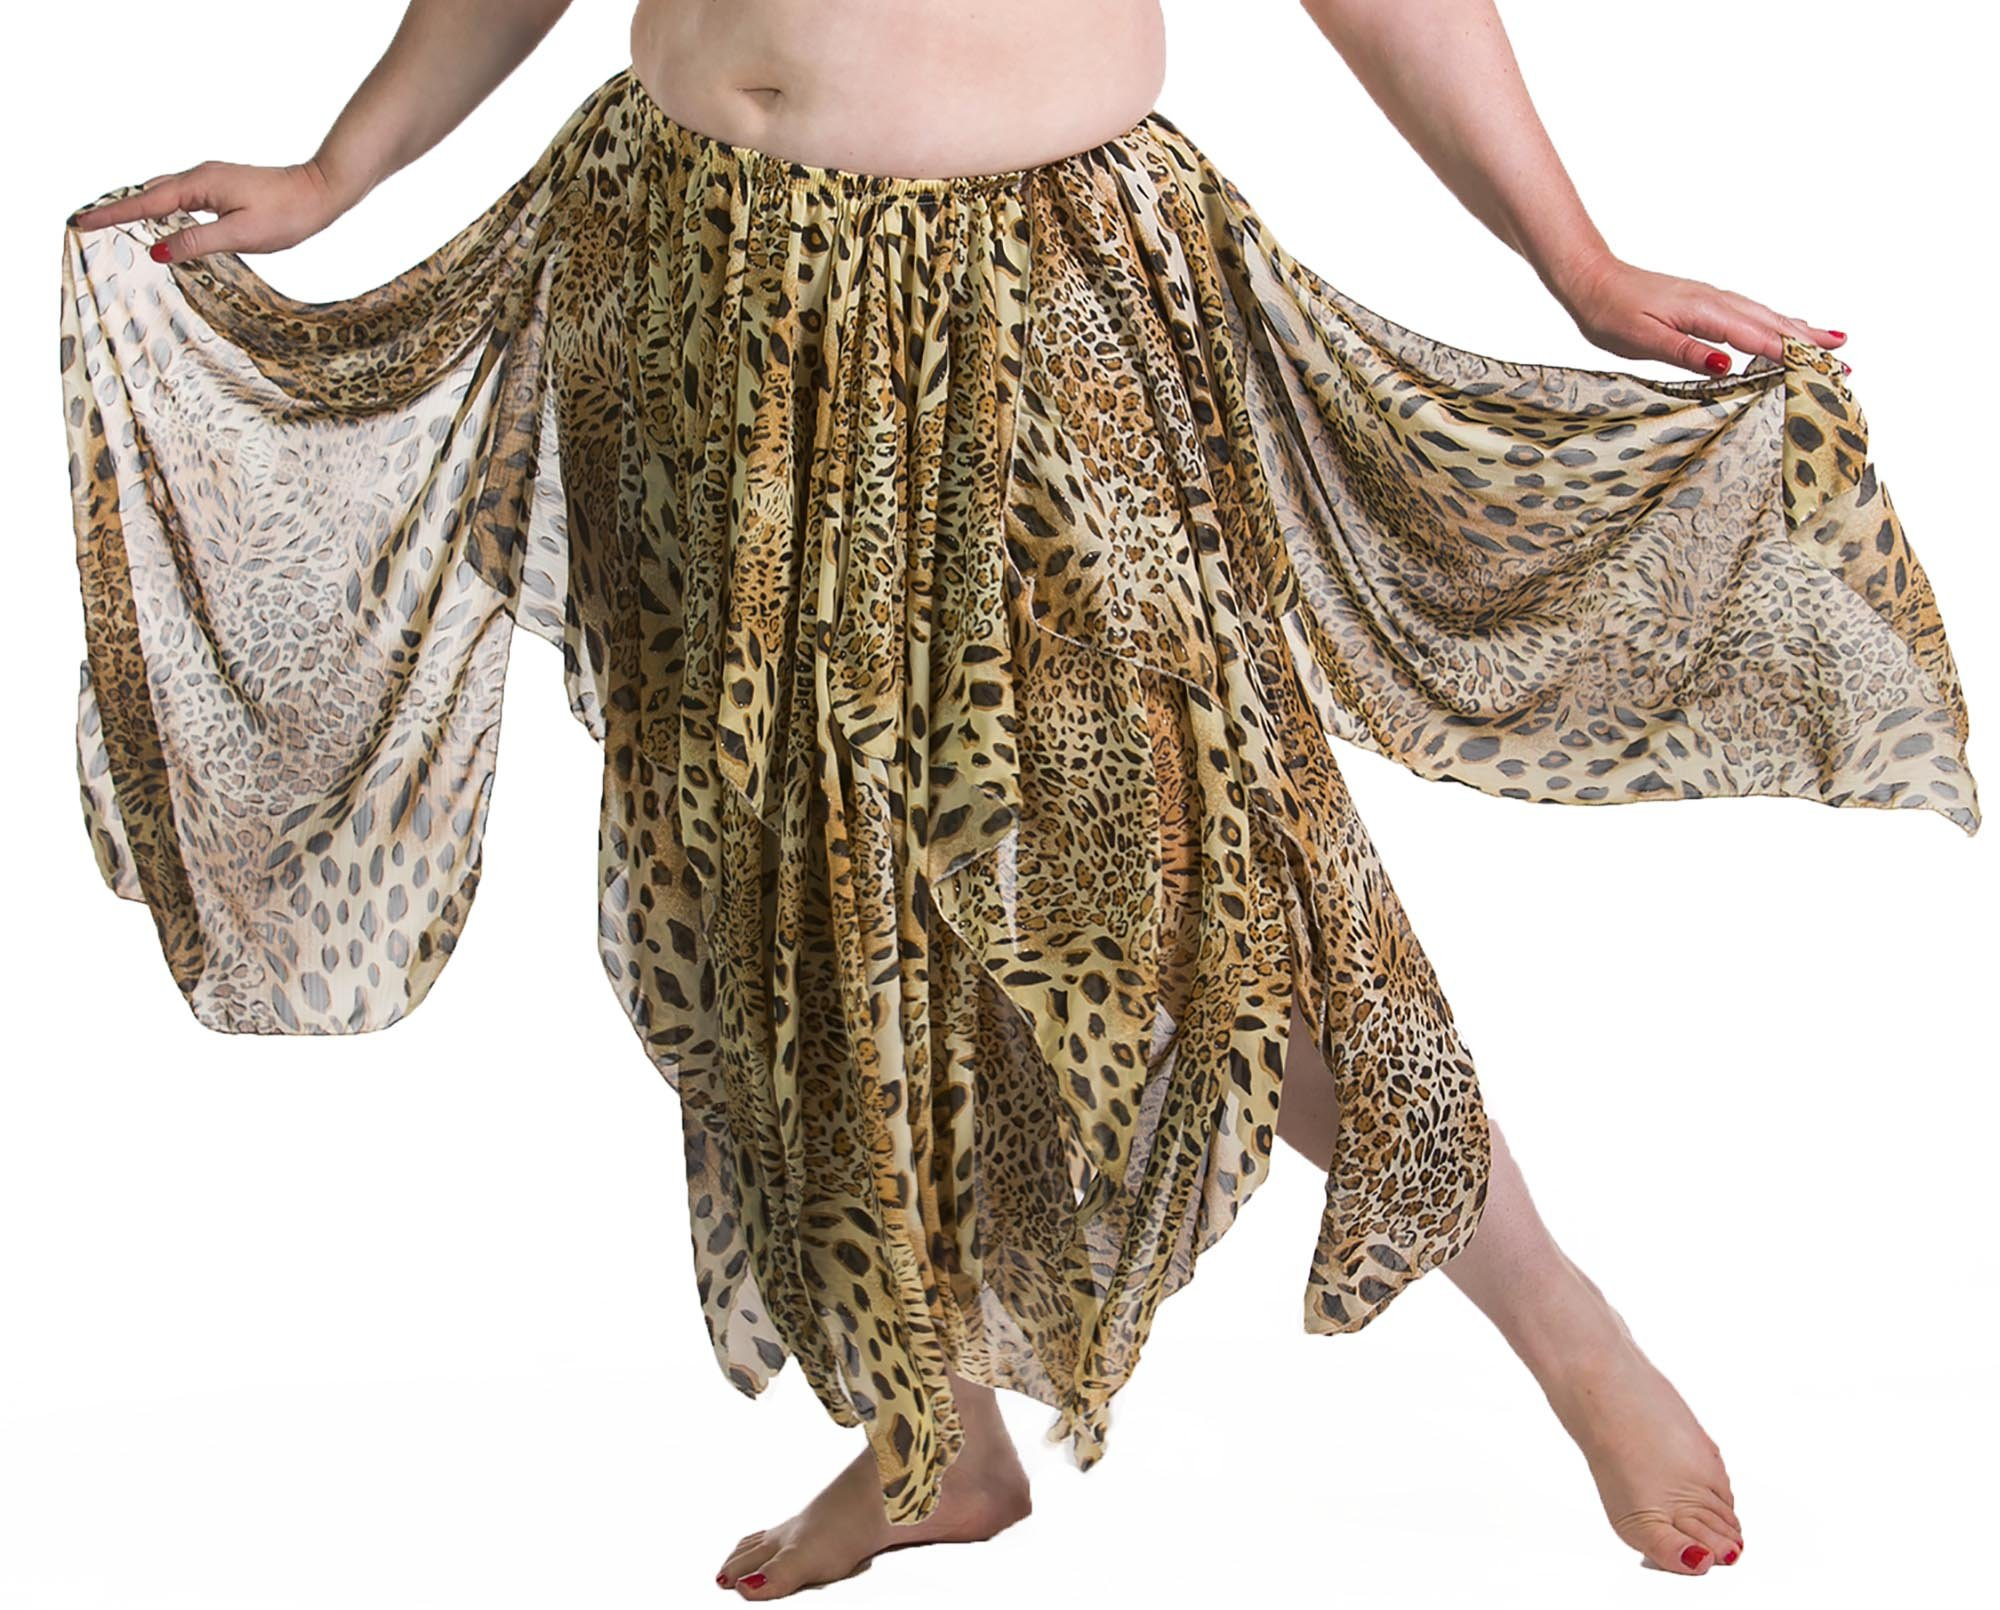 BELLY DANCE ACCESSORIES 13 PANEL CHIFFON SKIRT - LEOPARD by Miss Belly Dance